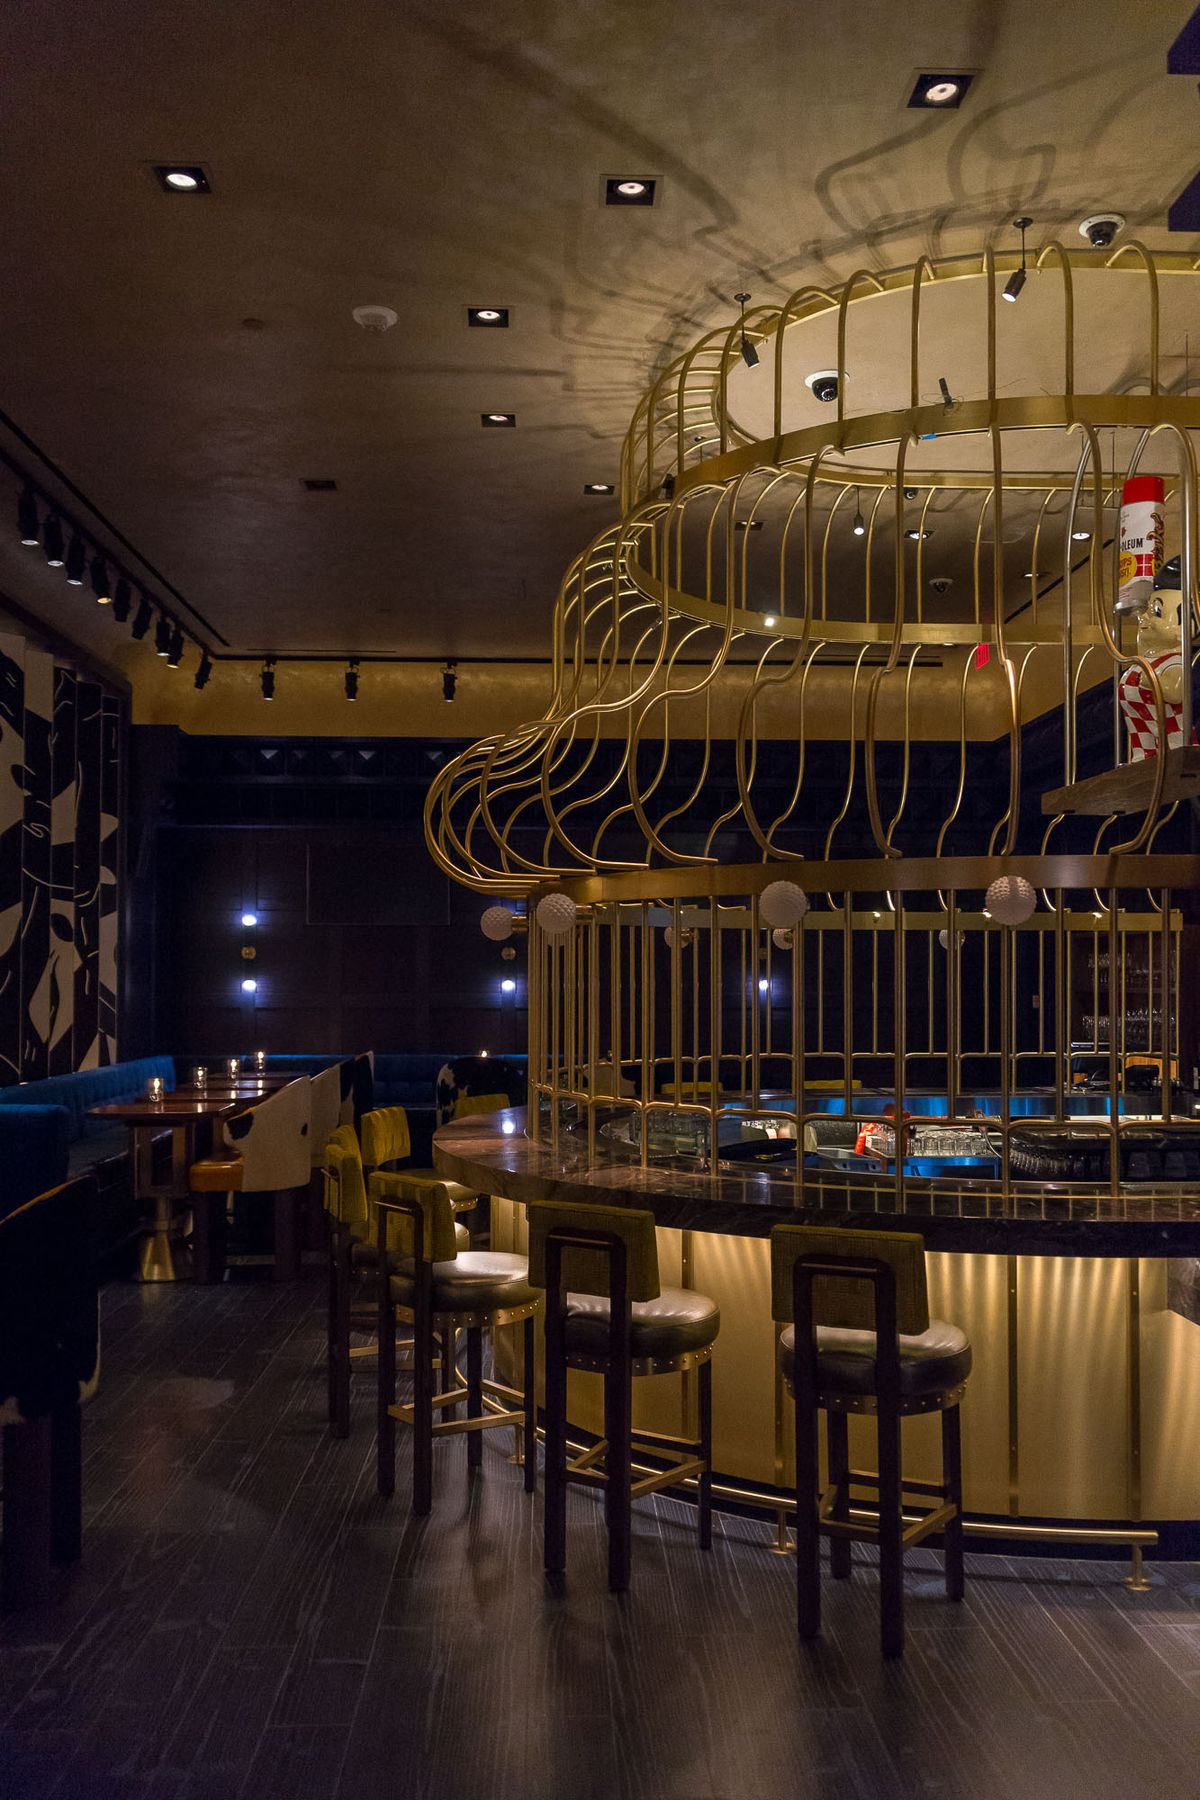 The birdcage in the bar at Greene St. Kitchen